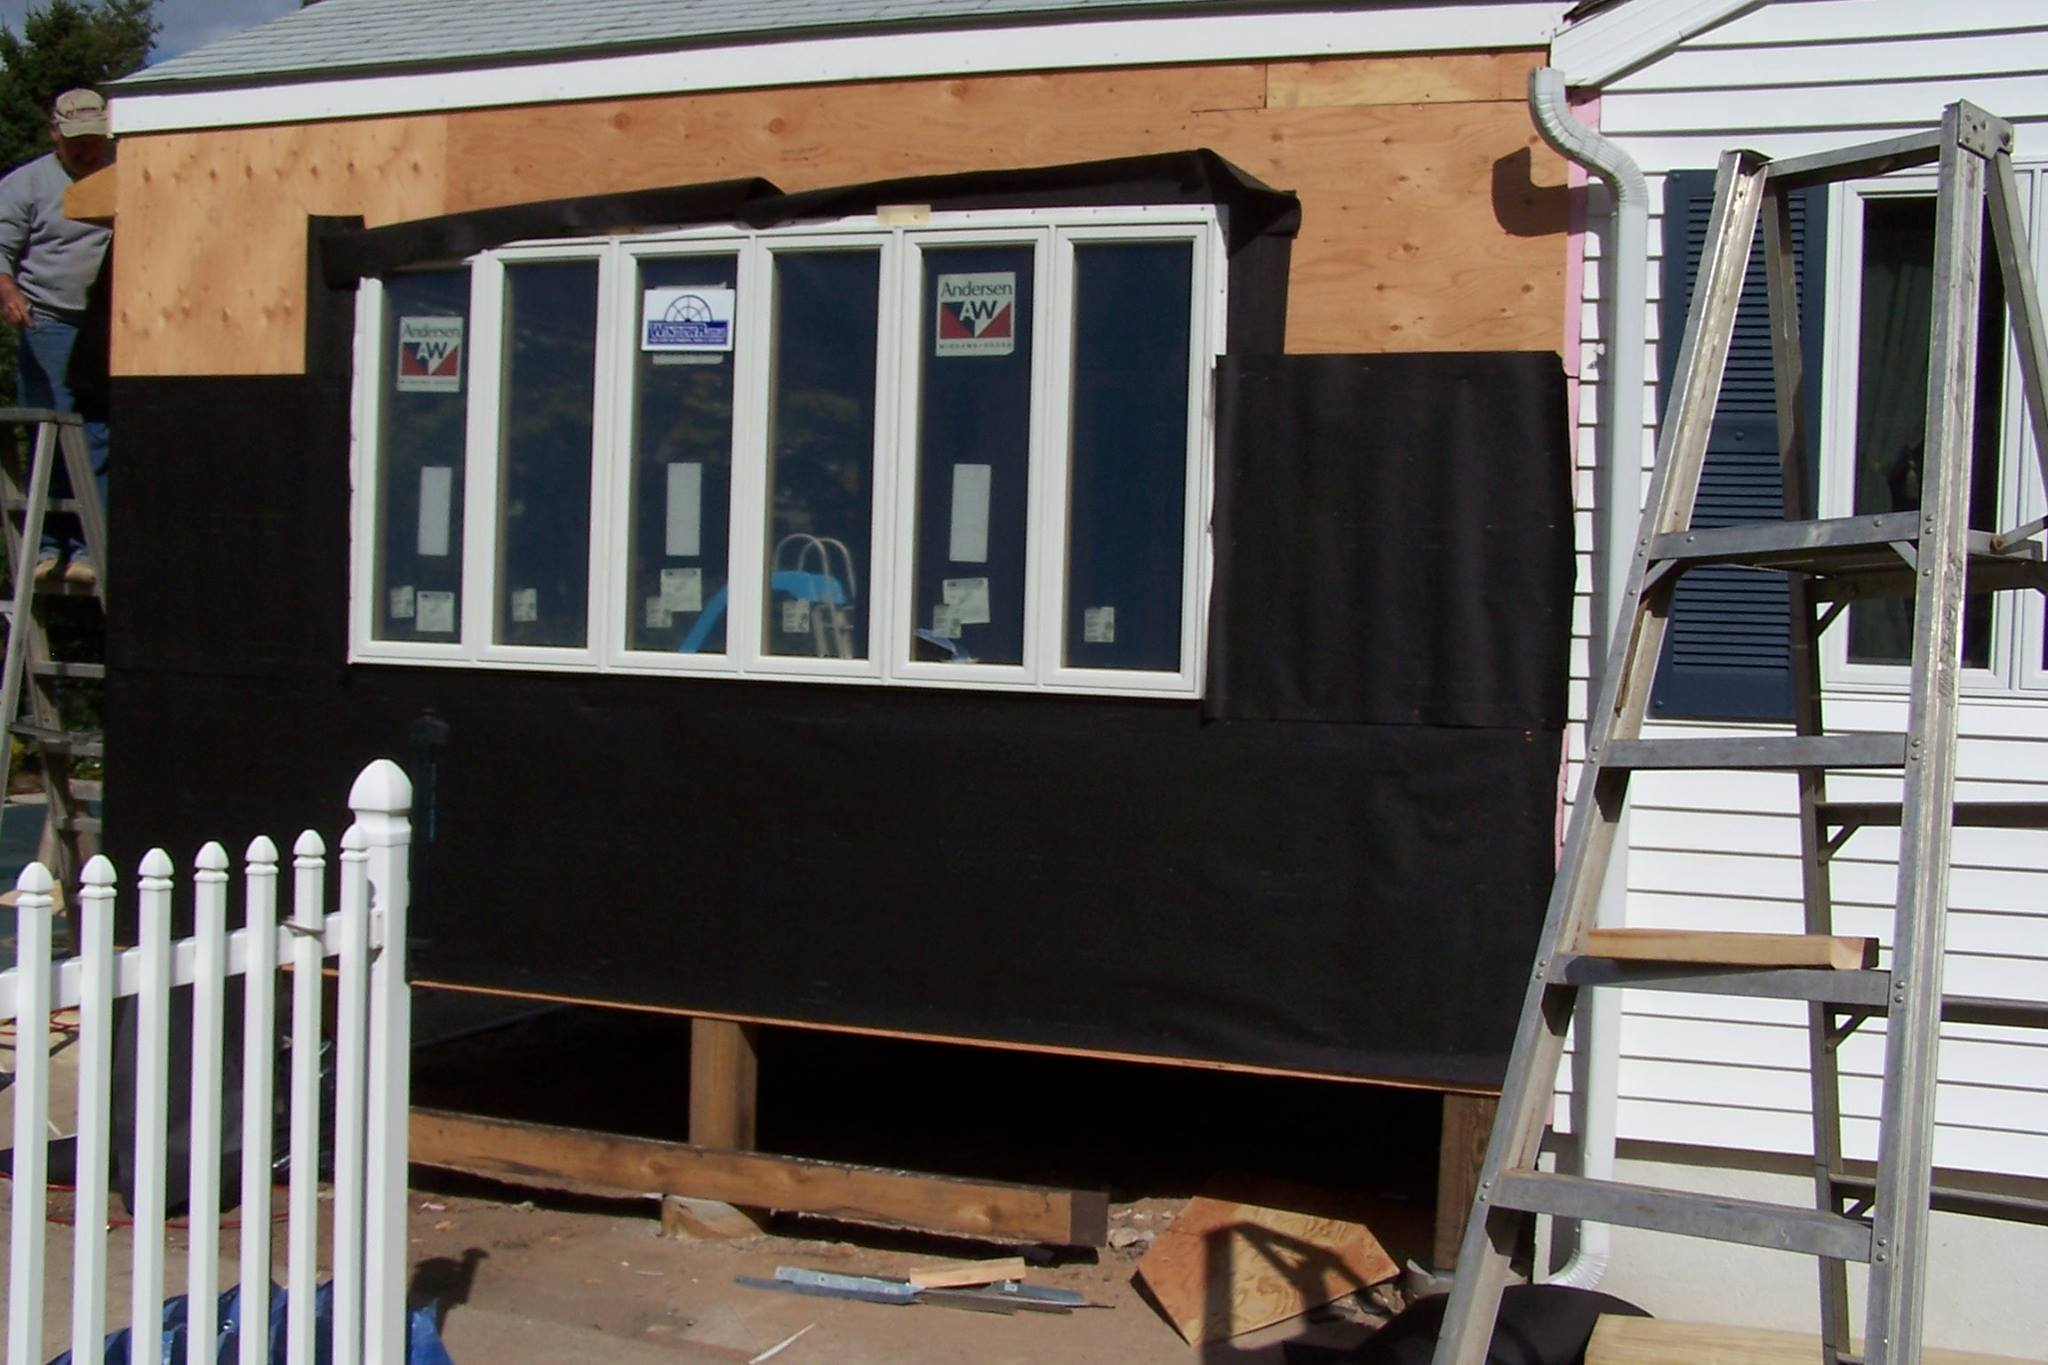 Replacement windows for home in North Haven, CT